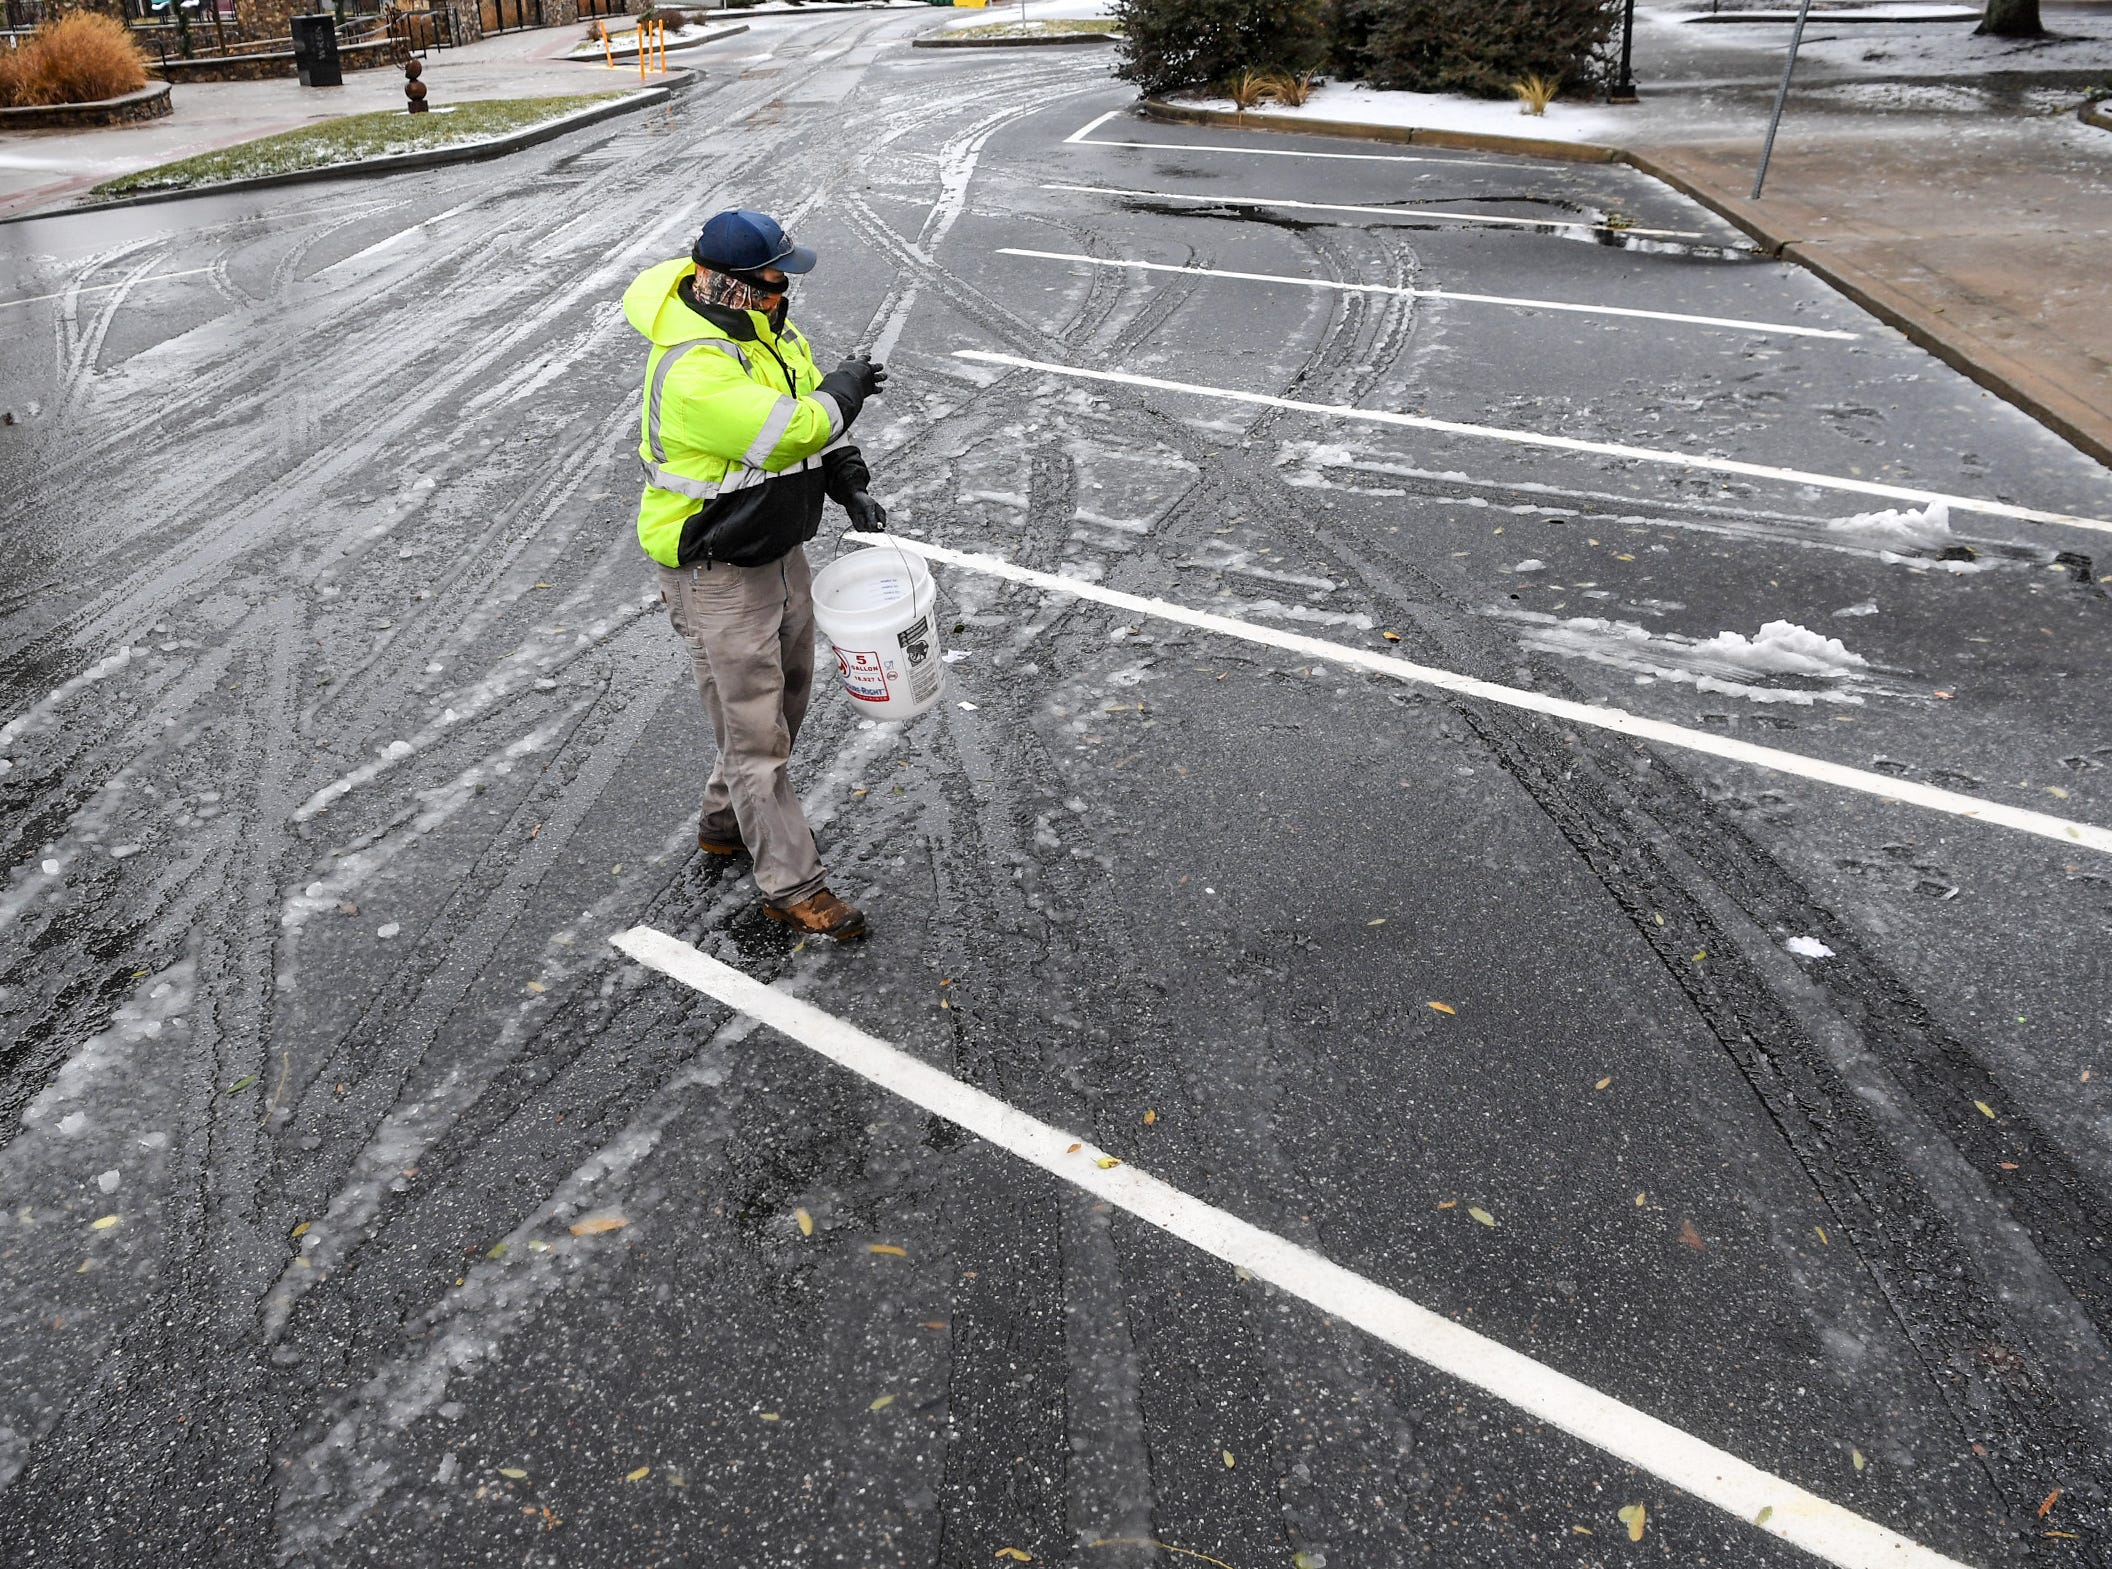 Collin Smith of the Anderson County Facilities tosses ice melt on parking area along West Whitner Street with a mix of snow and sleet Sunday morning, December 9, 2018.